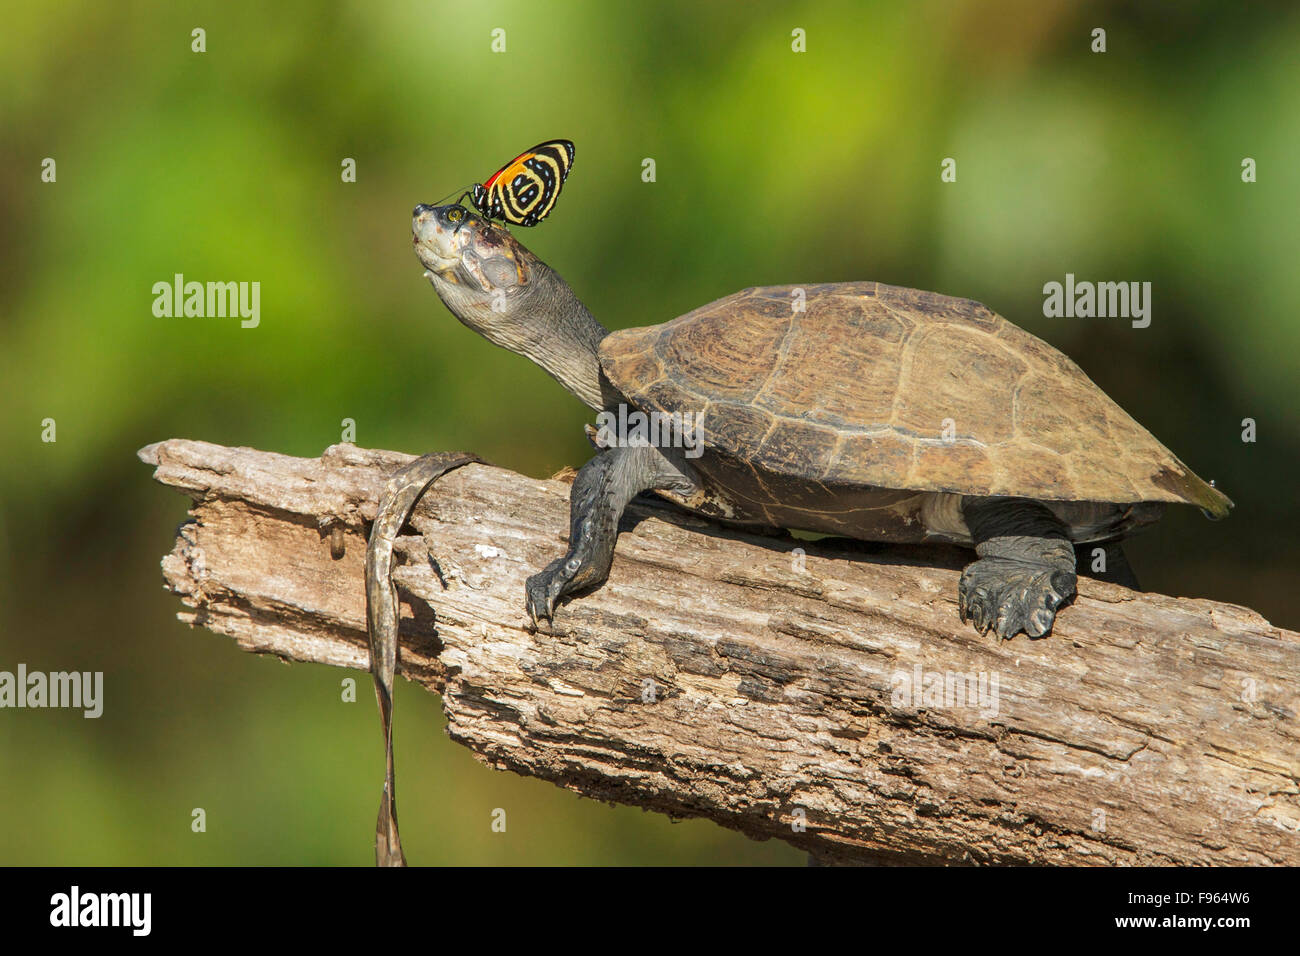 A turtle with a butterfly on its nose in Manu National Park, Peru. - Stock Image